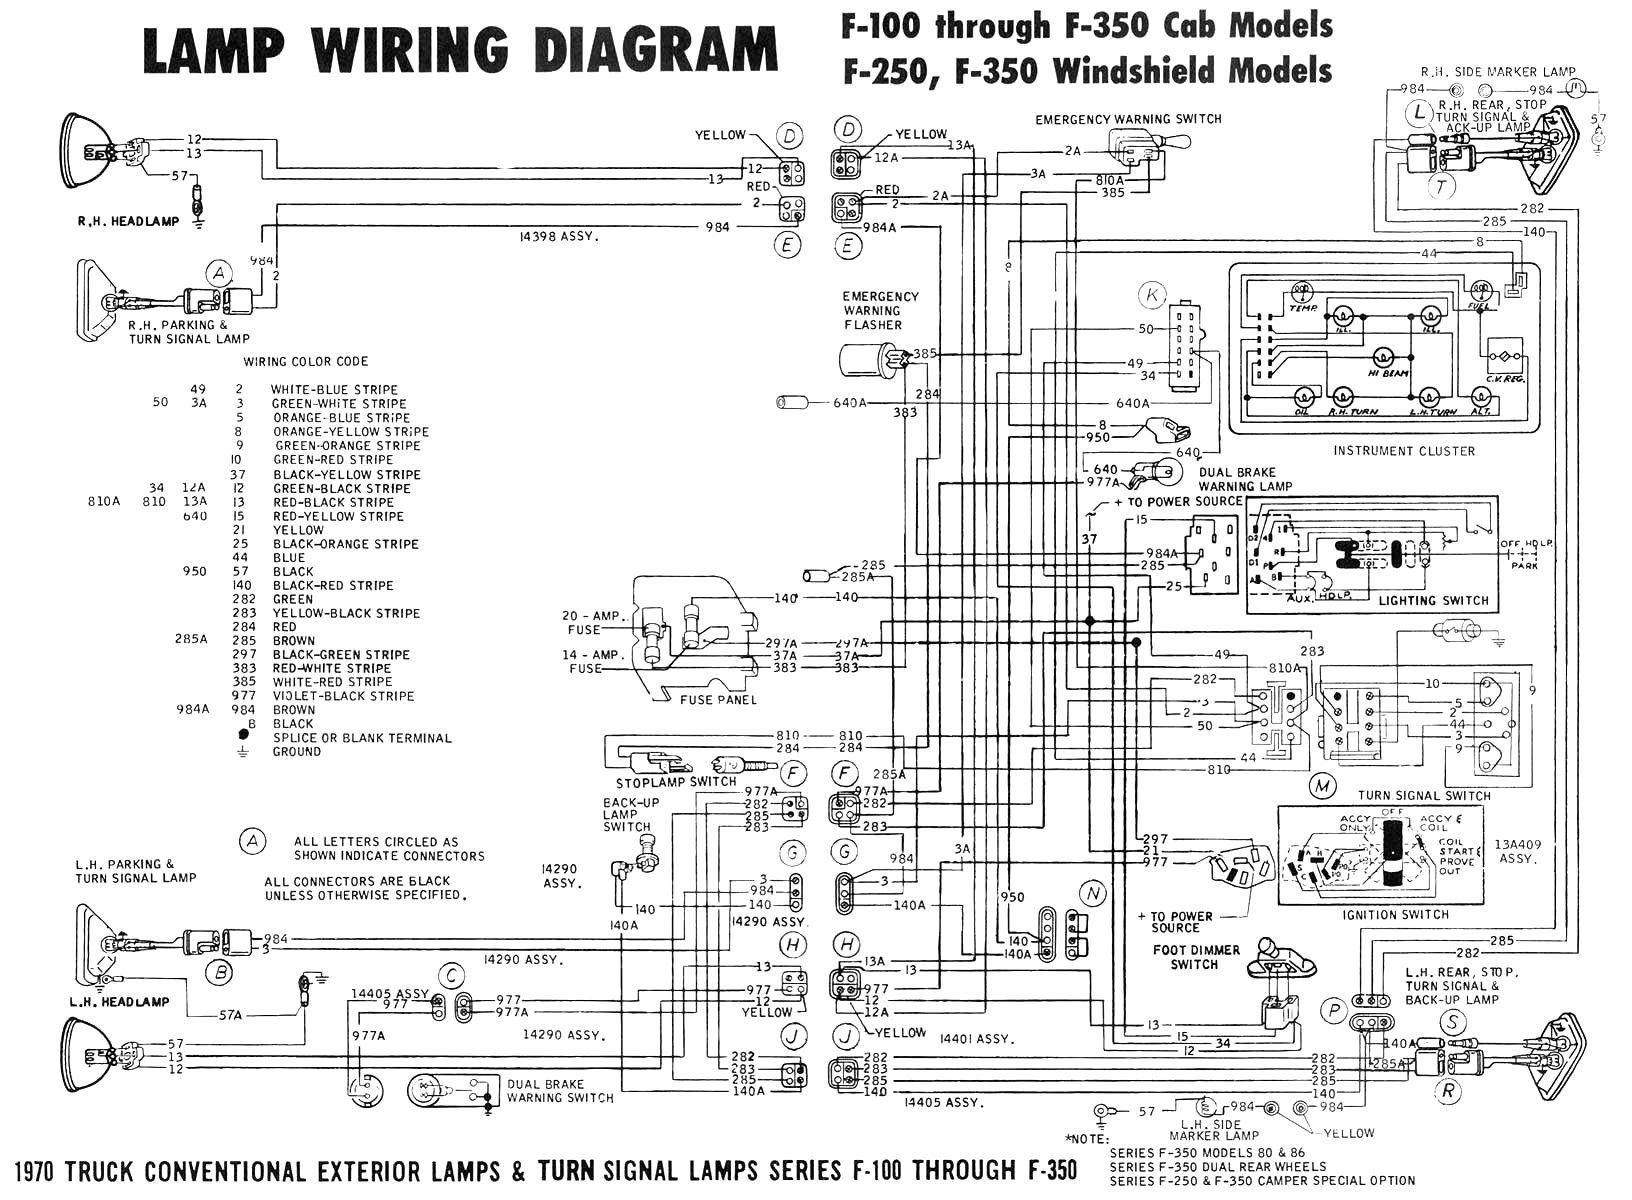 wiring diagram for sebring power seat get free image about wiring wire diagram polaris rear end schematic get free in addition yamaha